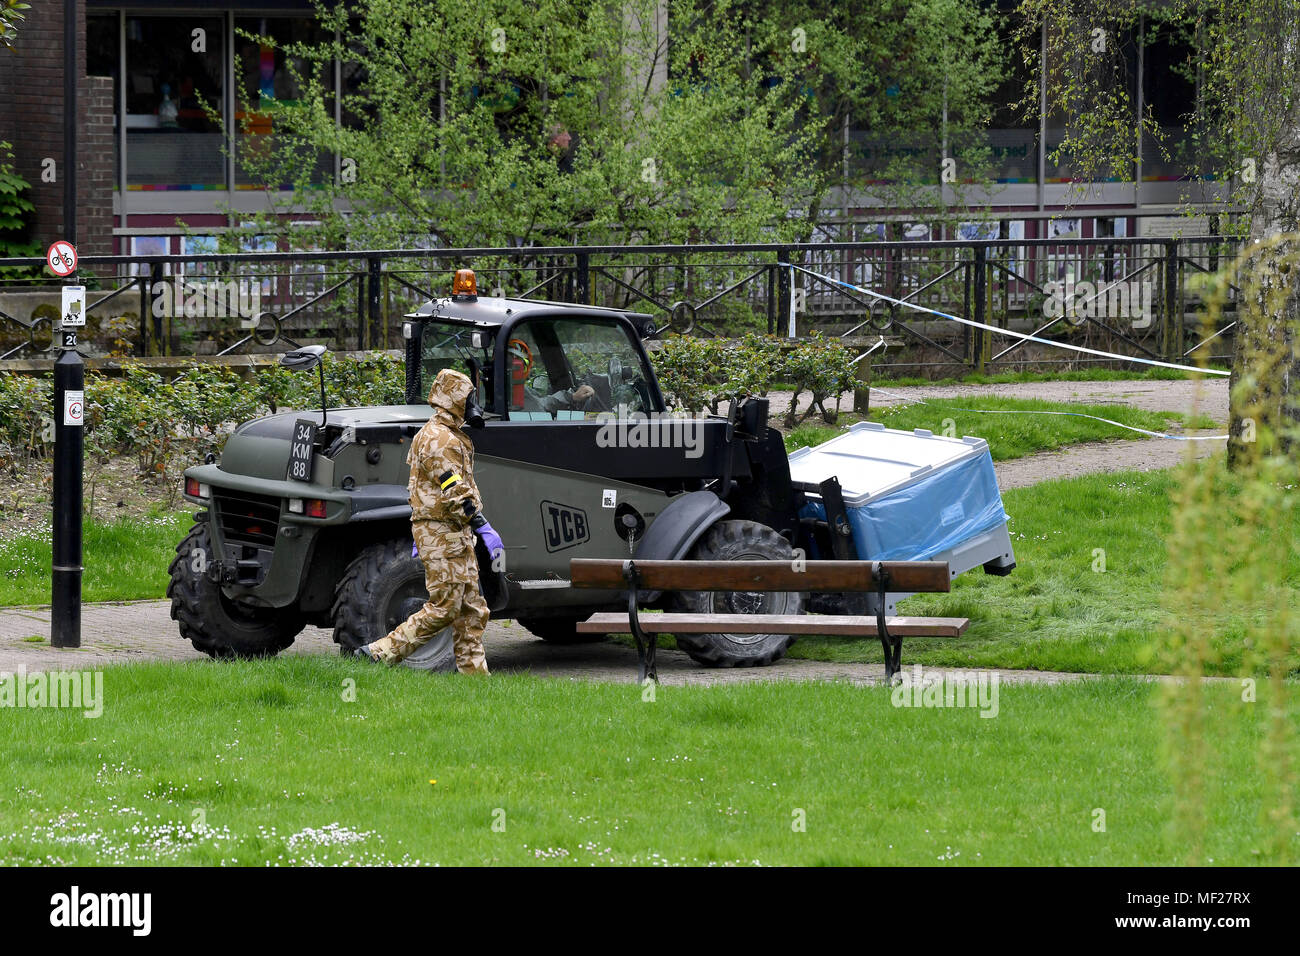 Salisbury, Wiltshire, UK. 24th April, 2018. Soldiers in breathing apparatus replacing the paving where Russian spy Sergei Skripal and his daughter collapsed after their nerve agent attack. Credit: Finnbarr Webster/Alamy Live News - Stock Image